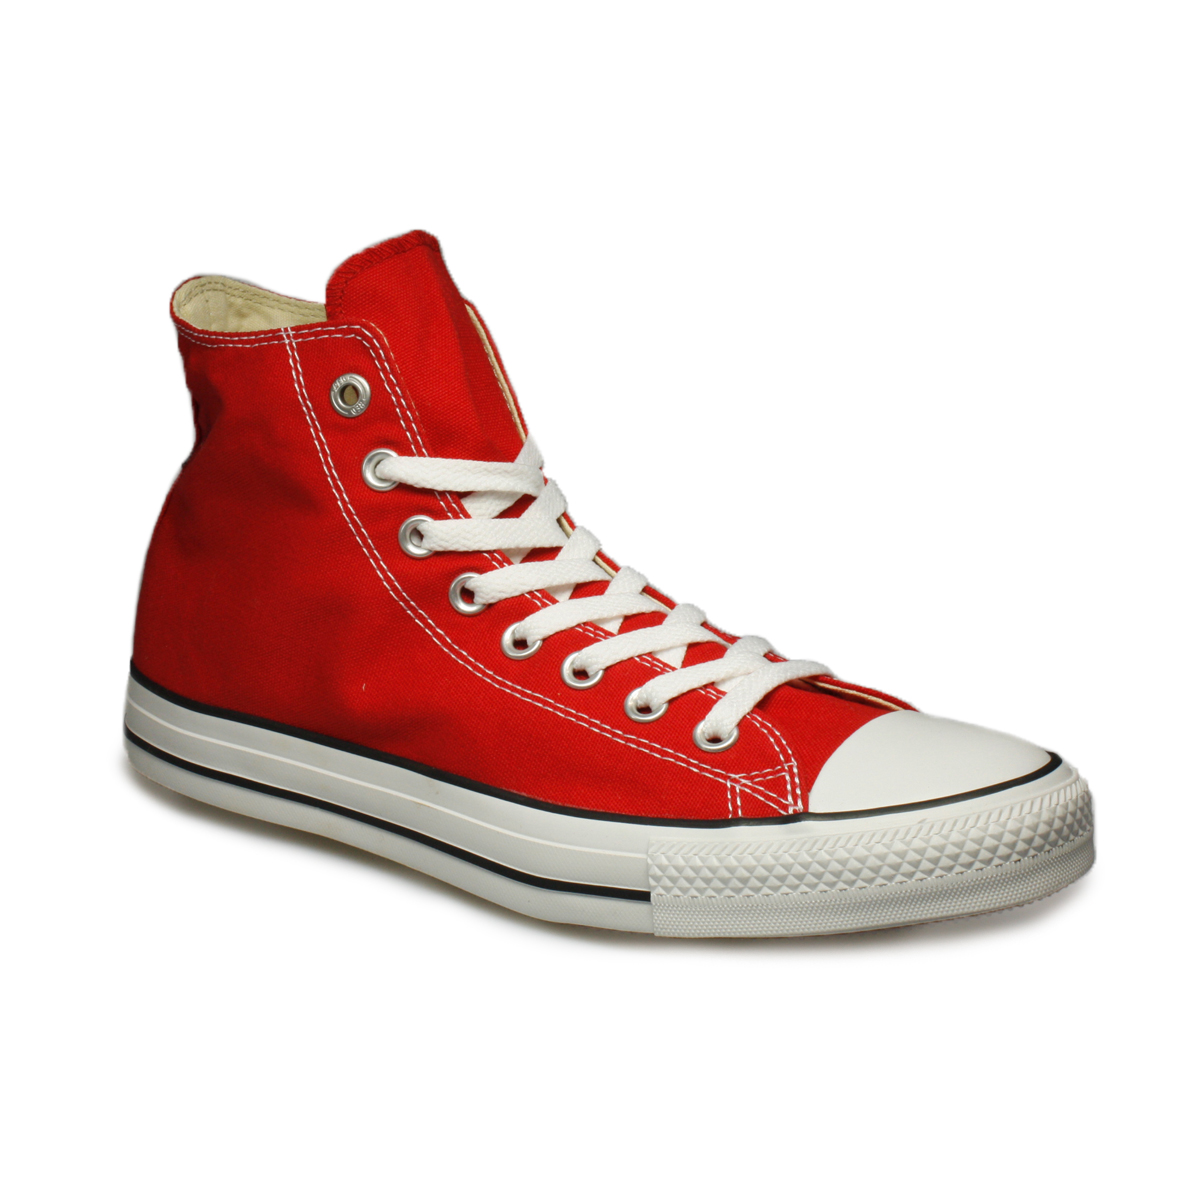 And1 Shoes. Showing 48 of 89 results that match your query. Search Product Result. Product - Boys And1 Casual Raven. Product Image. Price. And 1 Typhoon DMWRW White Red Athletic Basketball Shoes. See Details. Product - By Athletic Bankster. Product Image. Price $ Product Title. By Athletic Bankster.